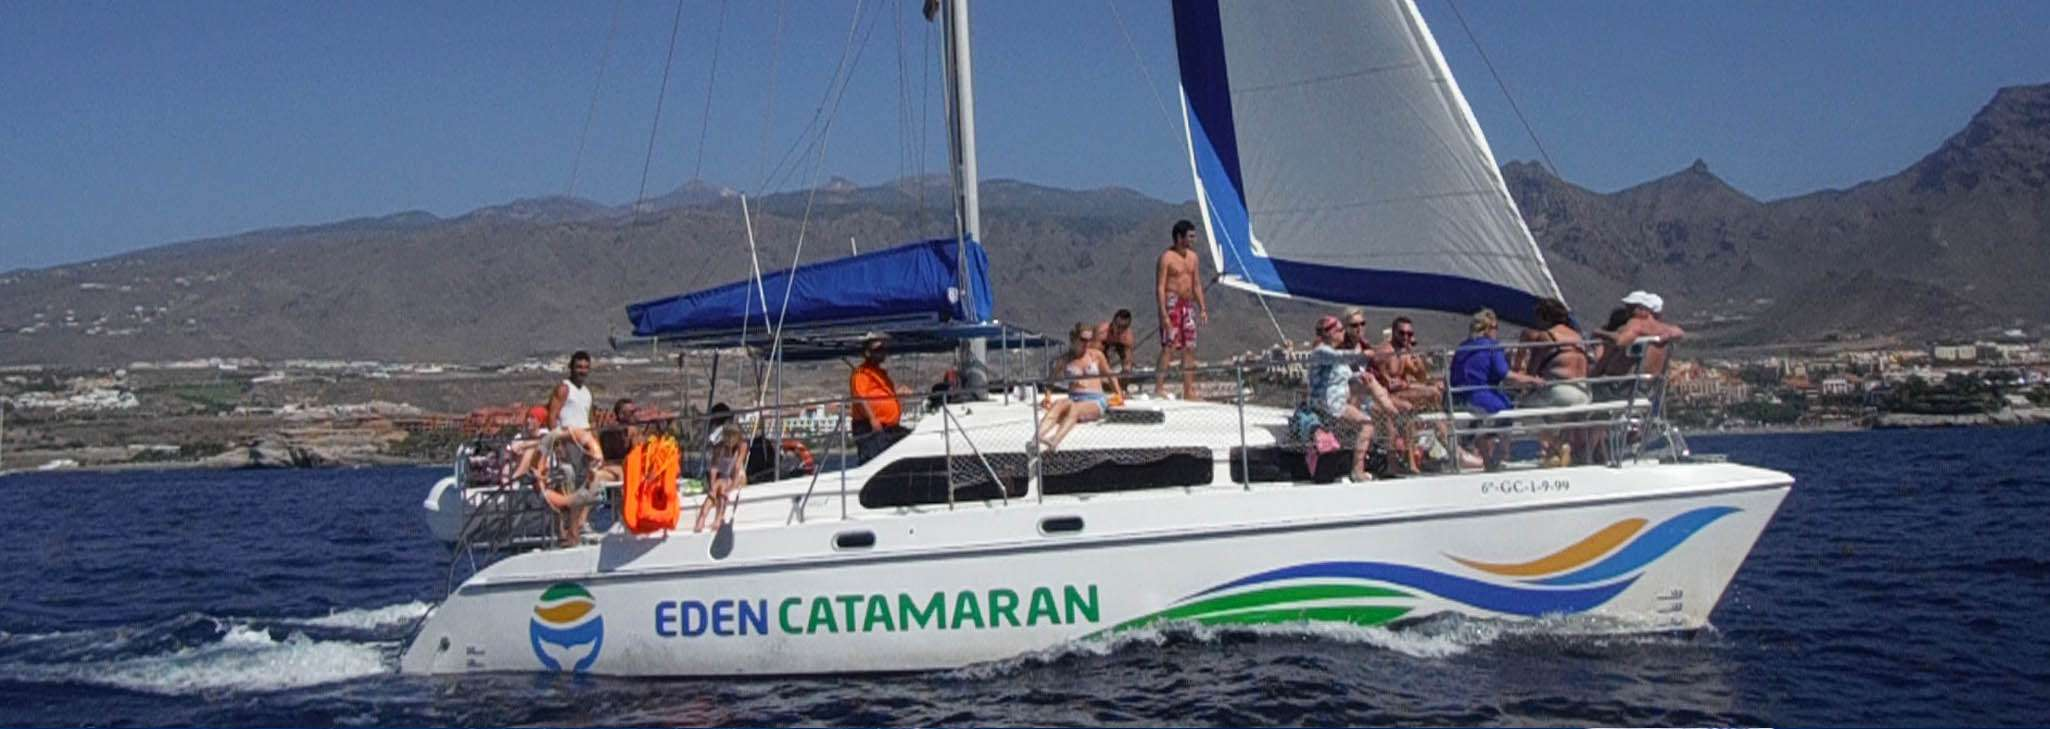 8fa8c9a286ee00 Excursion Edén Catamarán